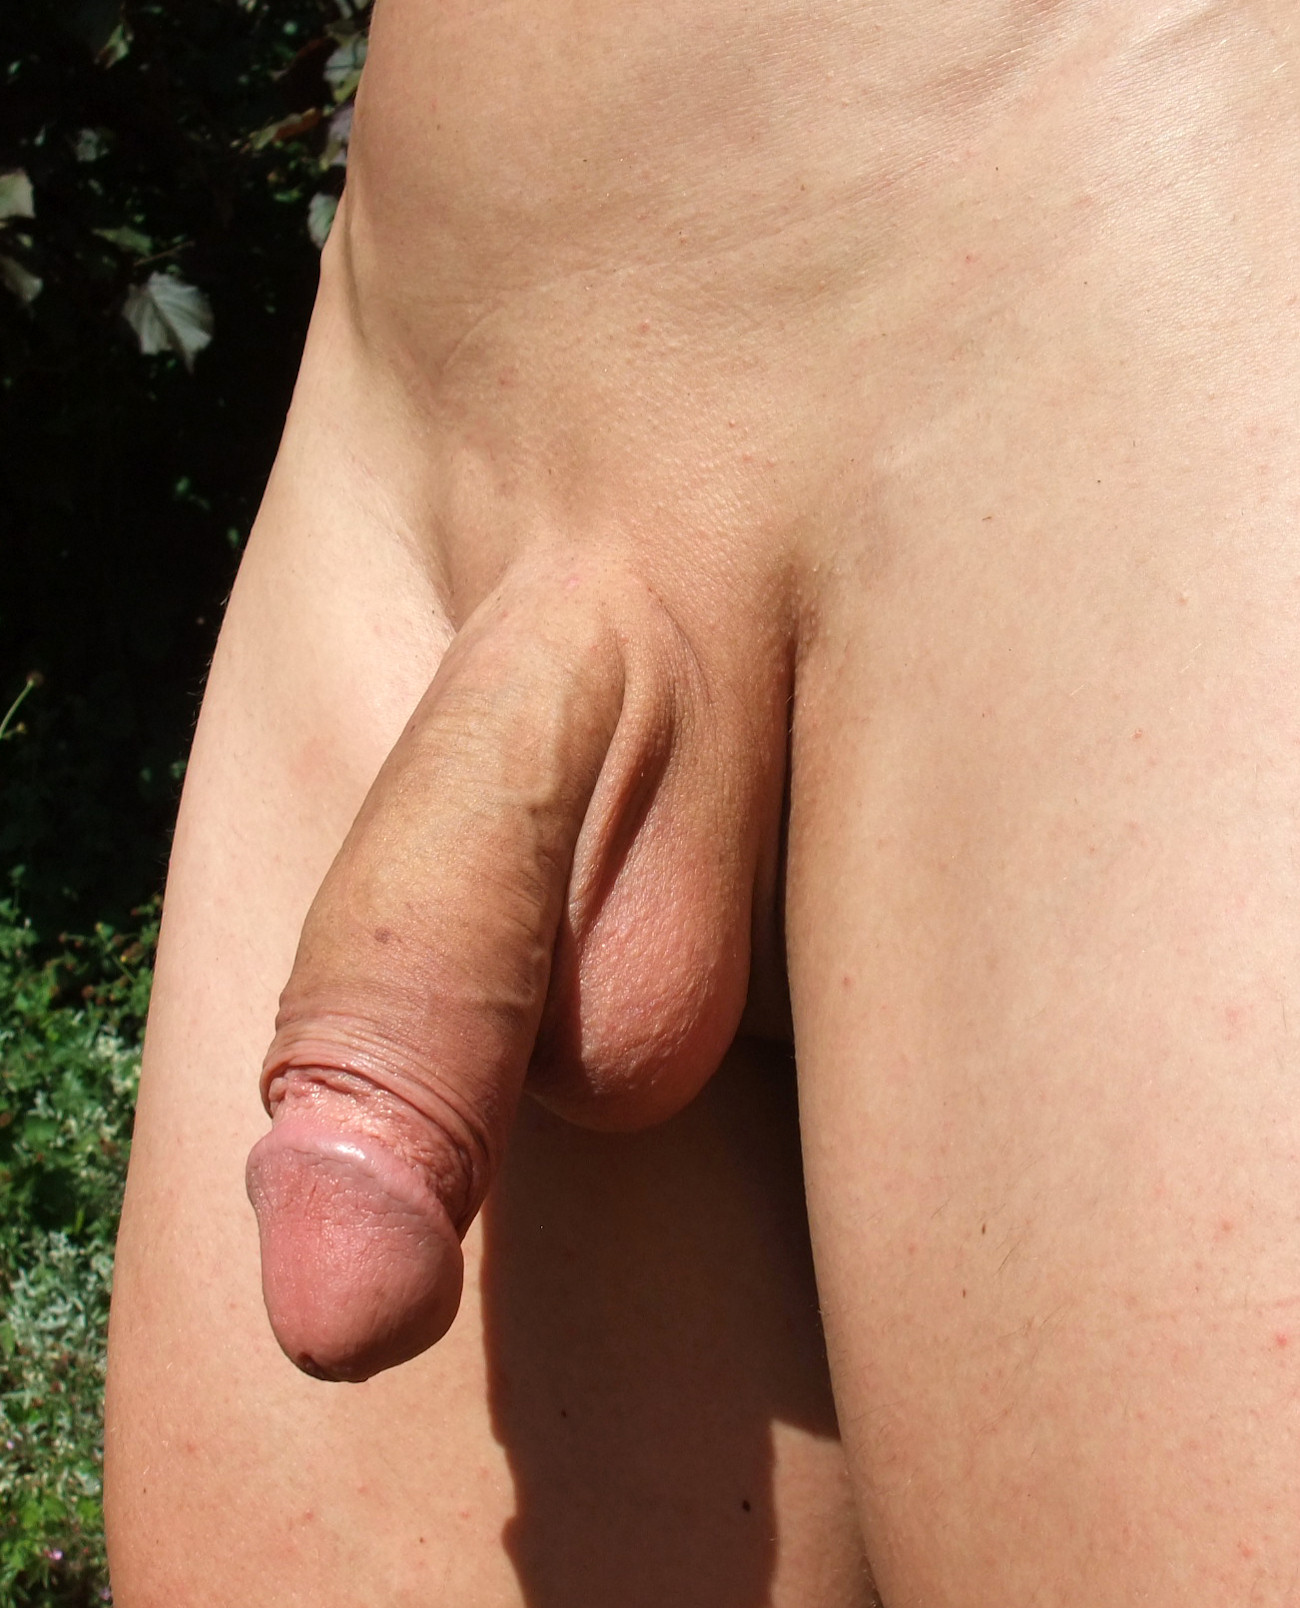 Penis naked shaved erect